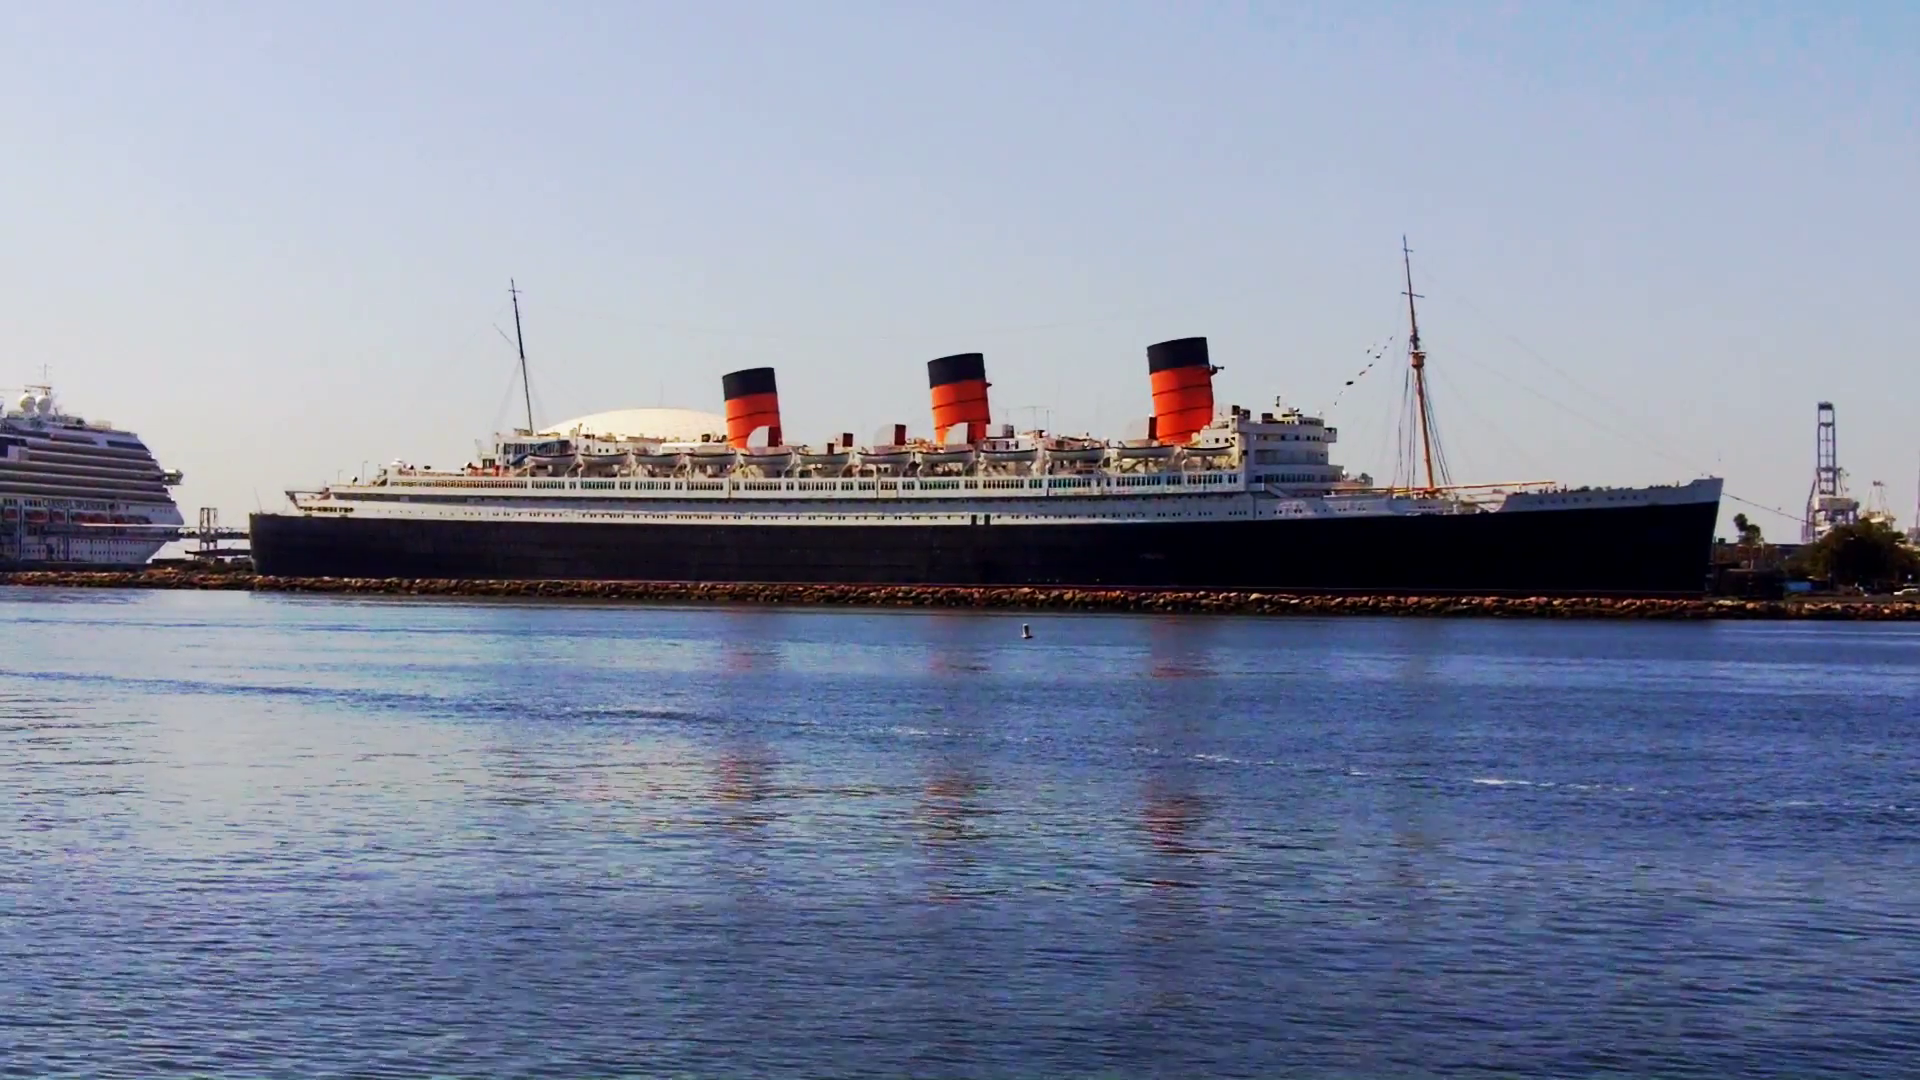 The Queen Mary Ship In Long Beach California Harbor Stock Video 1920x1080